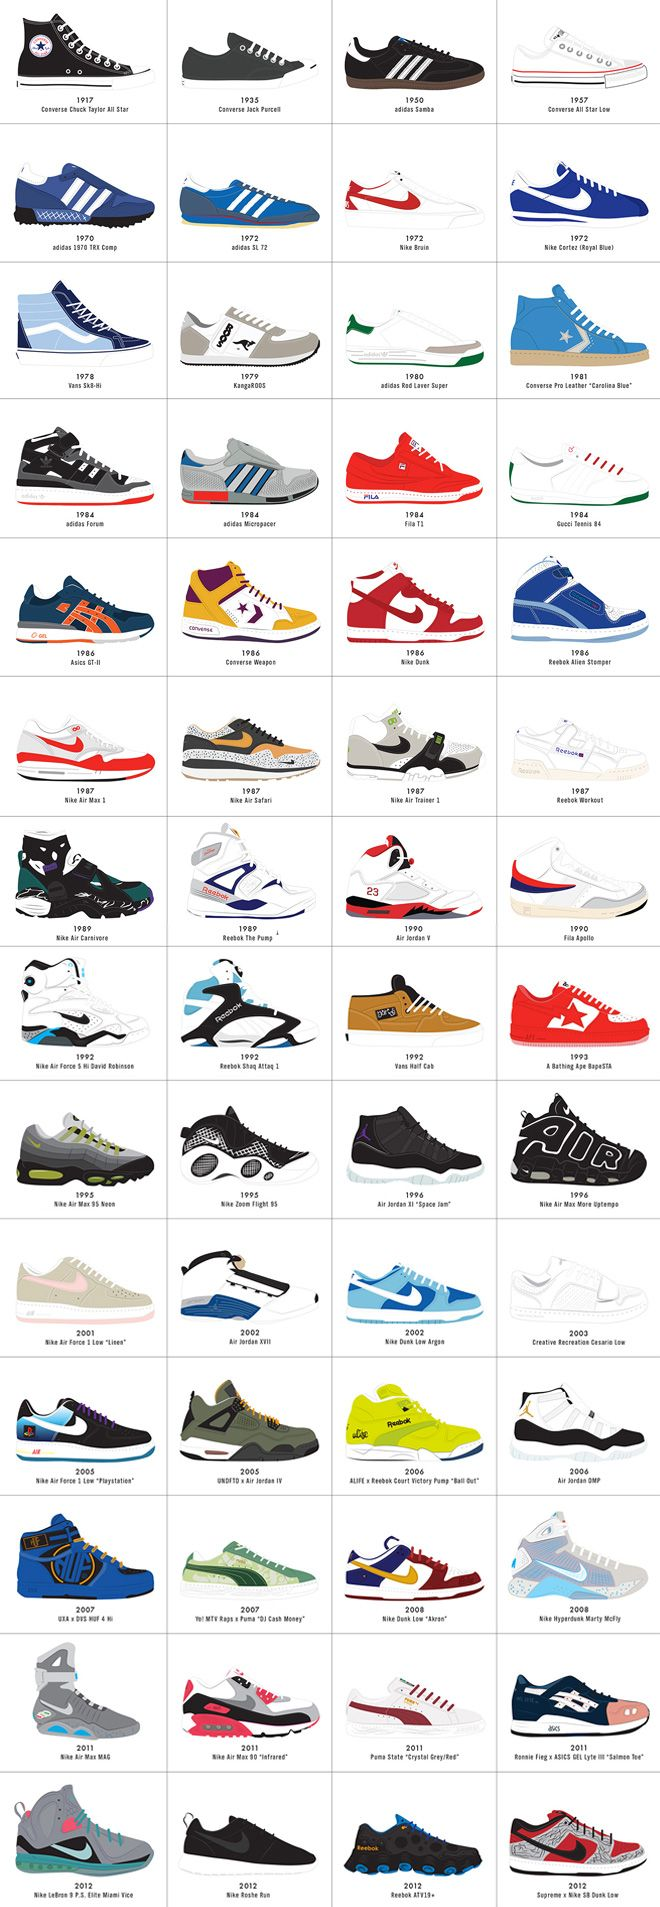 2-a-visual-compendium-of-sneakers-the-evolution-of-sneakers-design.jpg 660×1,907 pixels